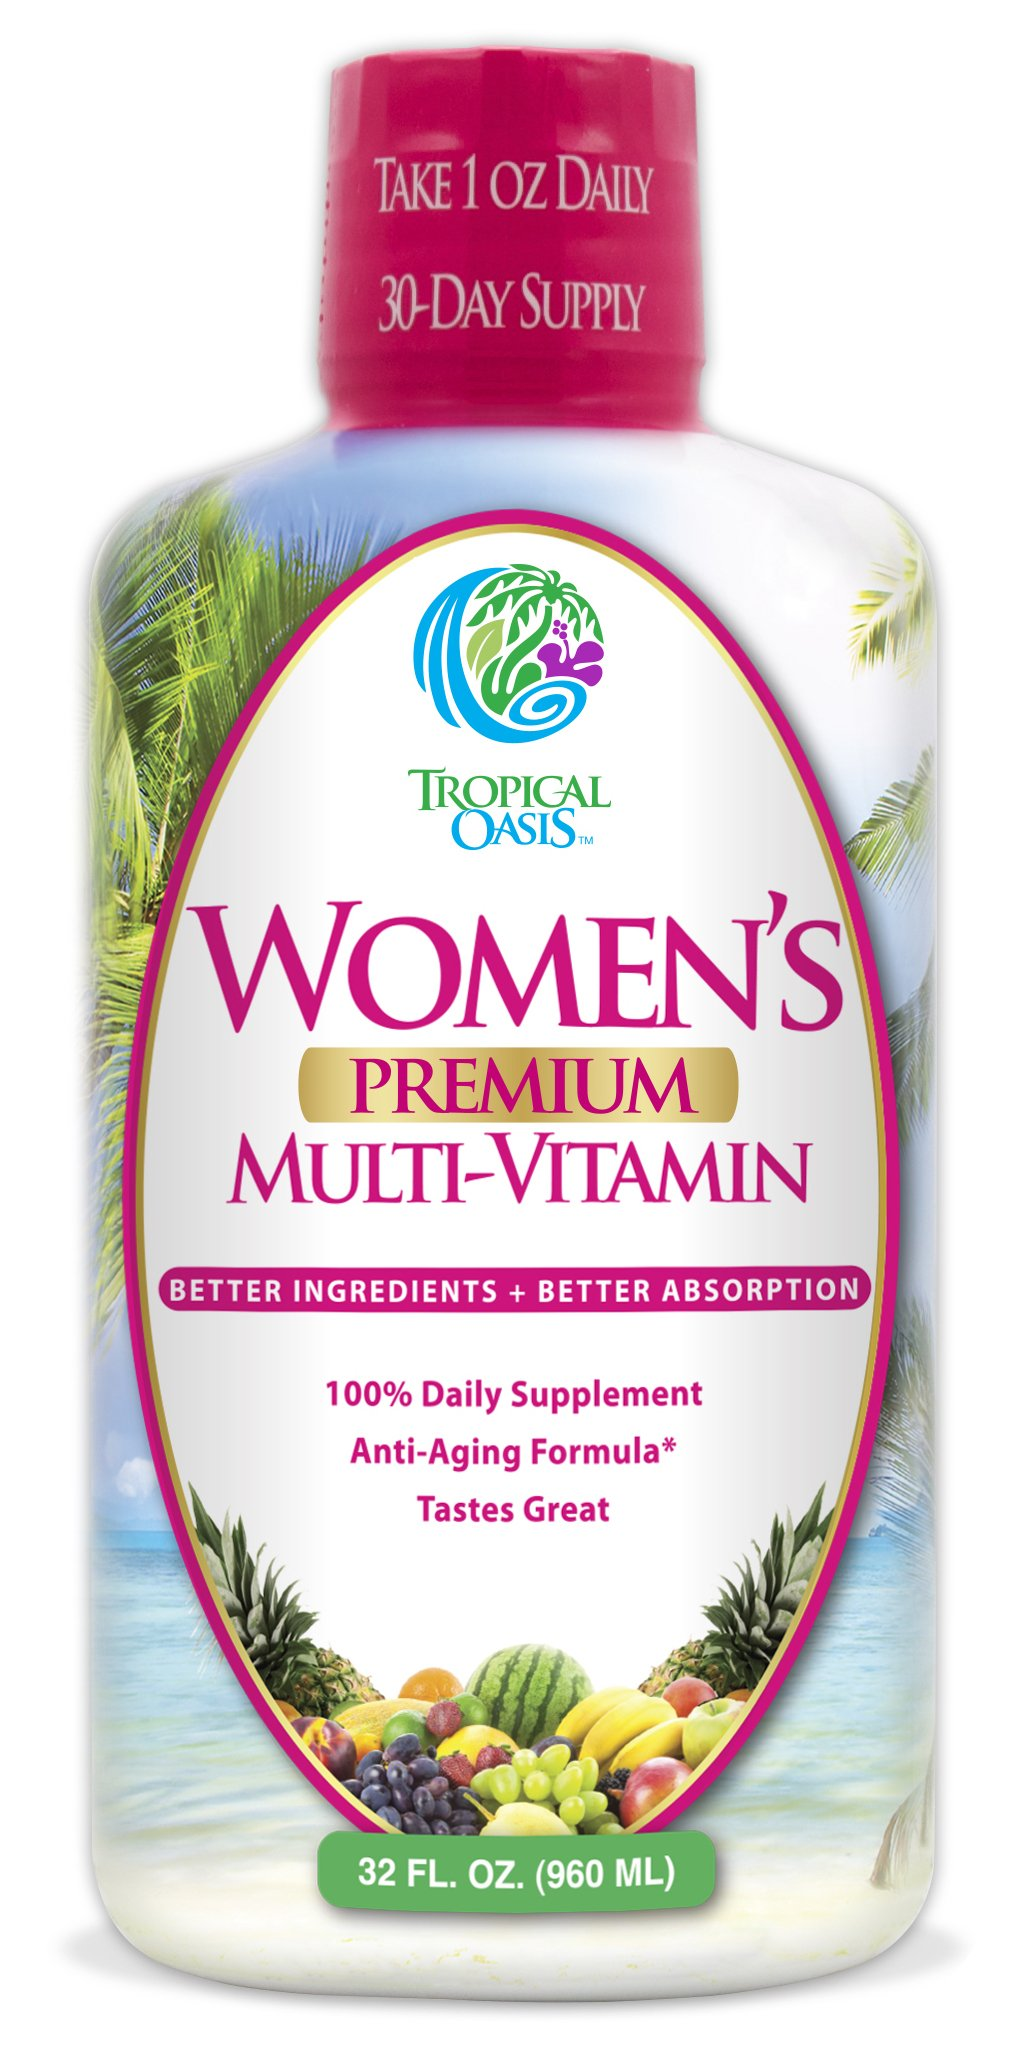 Women's Premium Liquid Multivitamin, Superfood, & Herbal Blend -- Multi-Vitamin for women with 100+ Ingredients for Heart, Brain, & Bone Health -1mo supply, 32 Serv